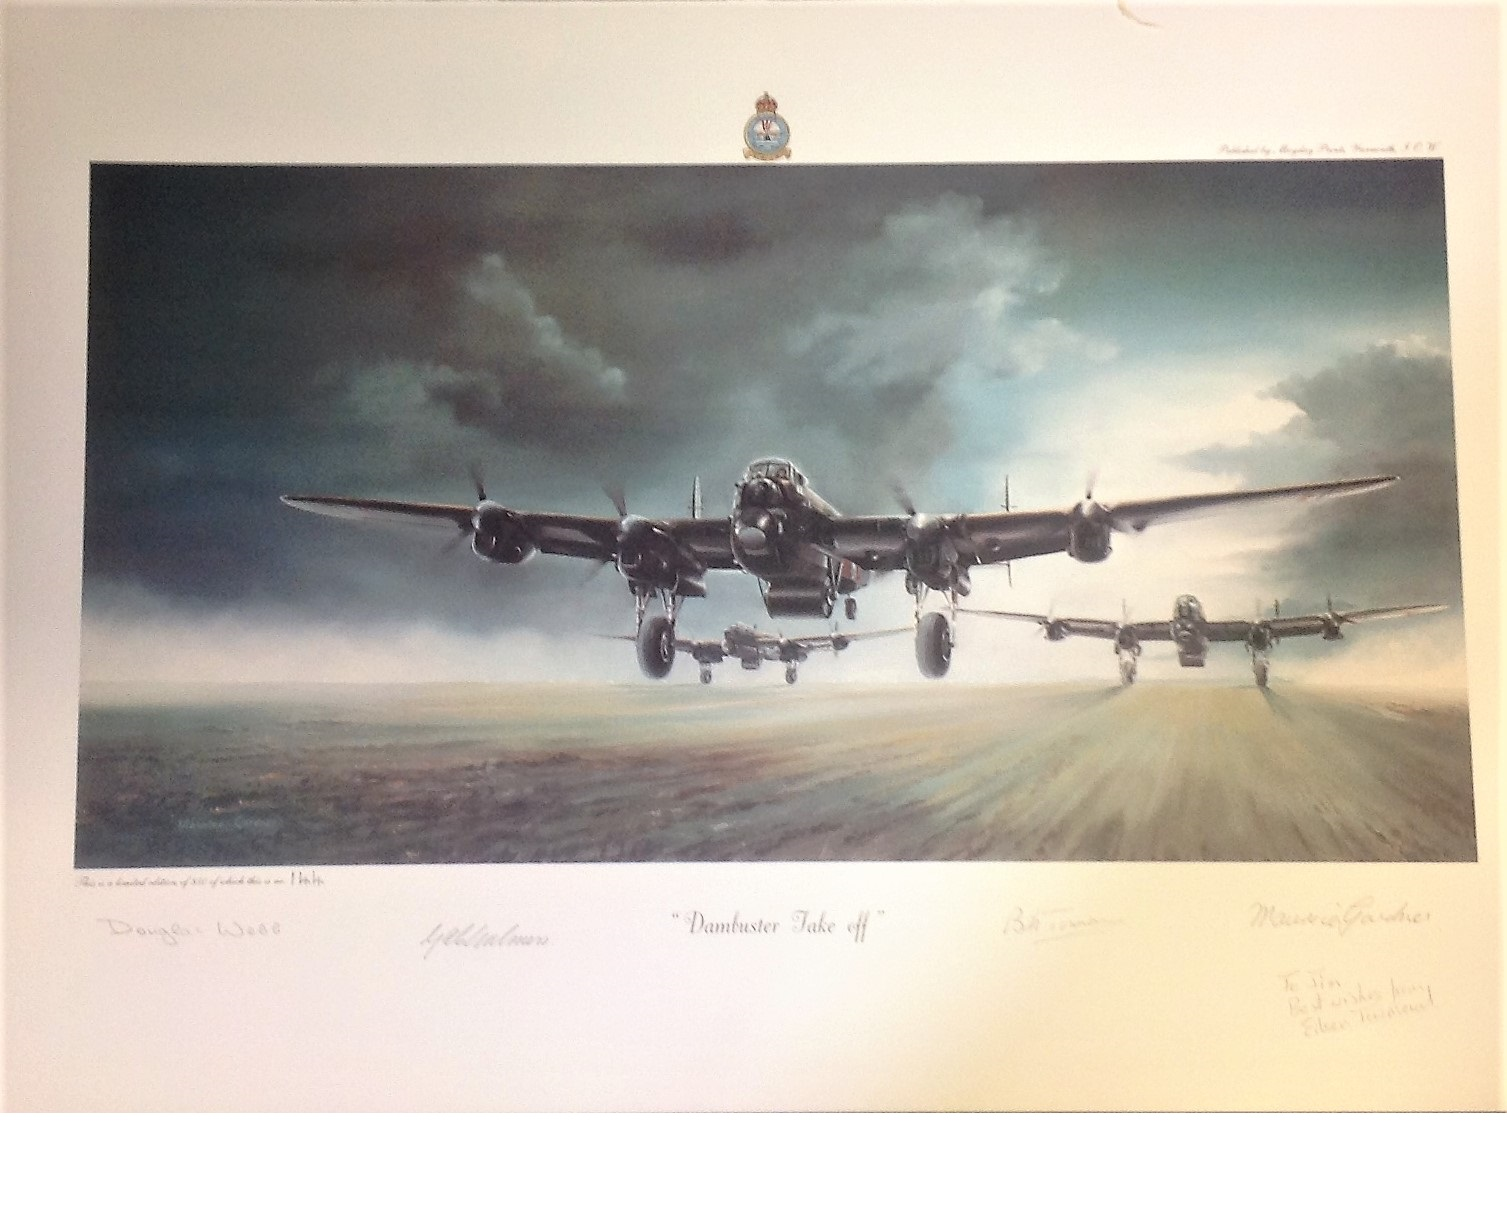 Lot 111 - World war Two print 14x20 from Bill Townsend collection titled Dambusters Take Off by the artist